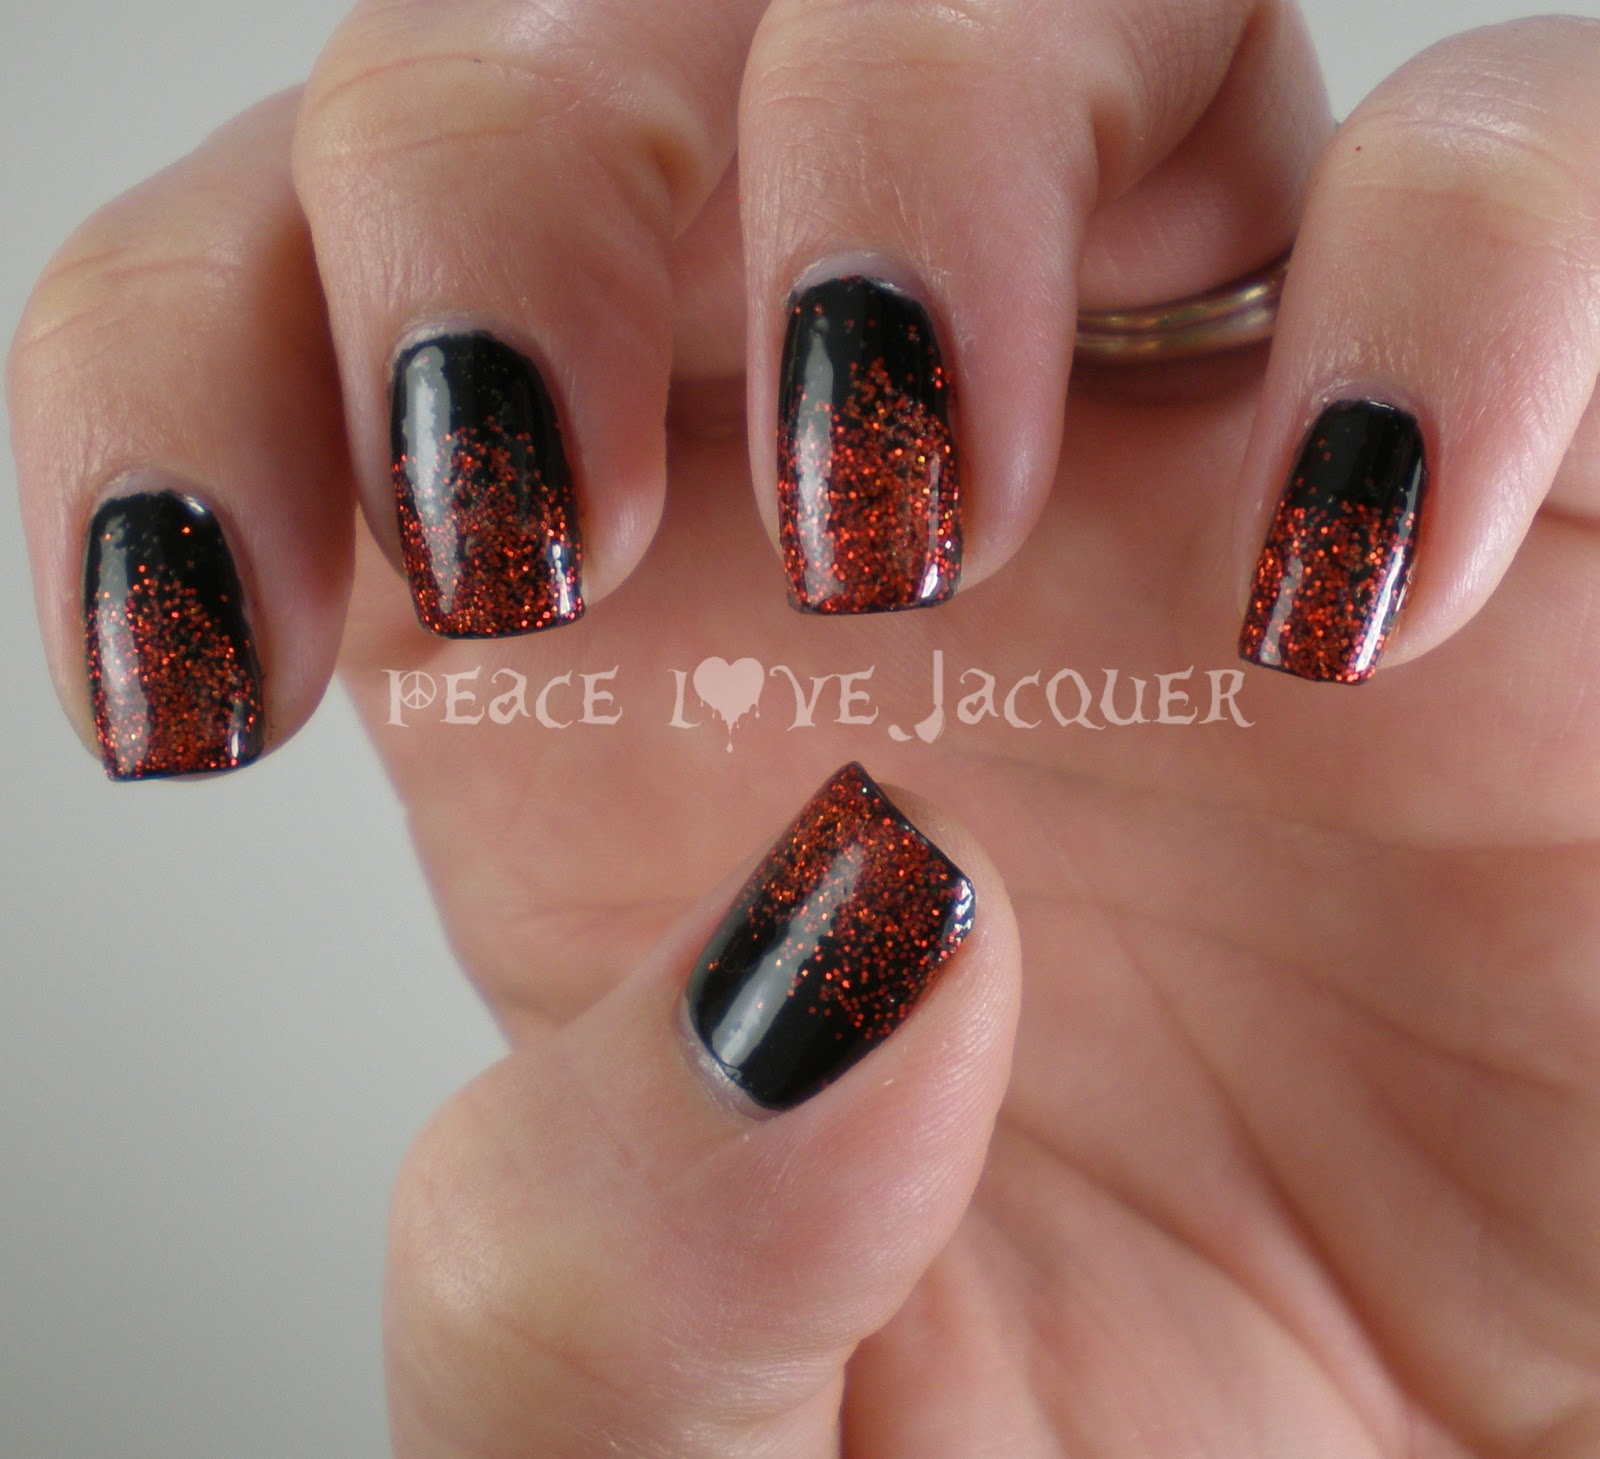 Peace love lacquer red glitter gradient nail art red glitter gradient nail art prinsesfo Gallery